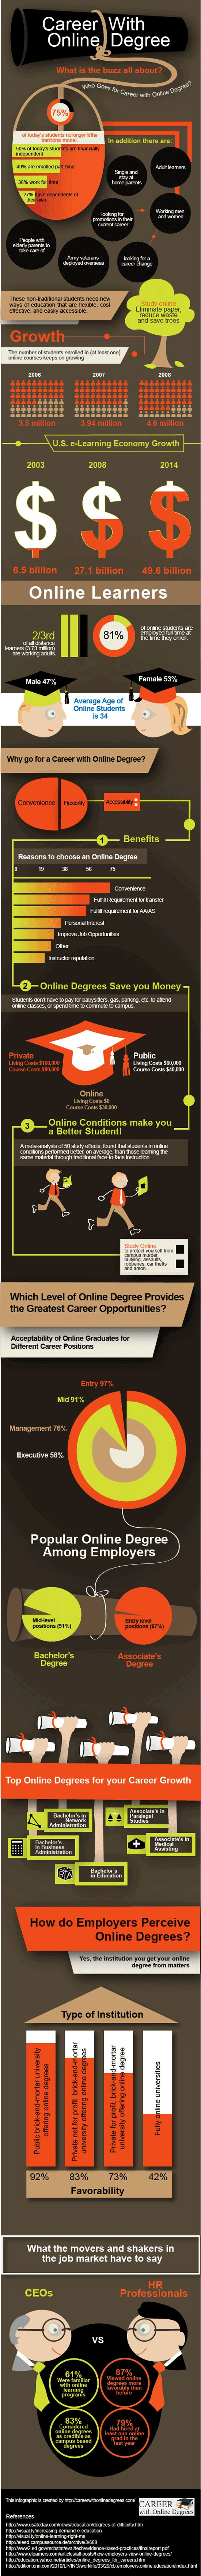 Do Online Degrees hold any value? [Infographic]